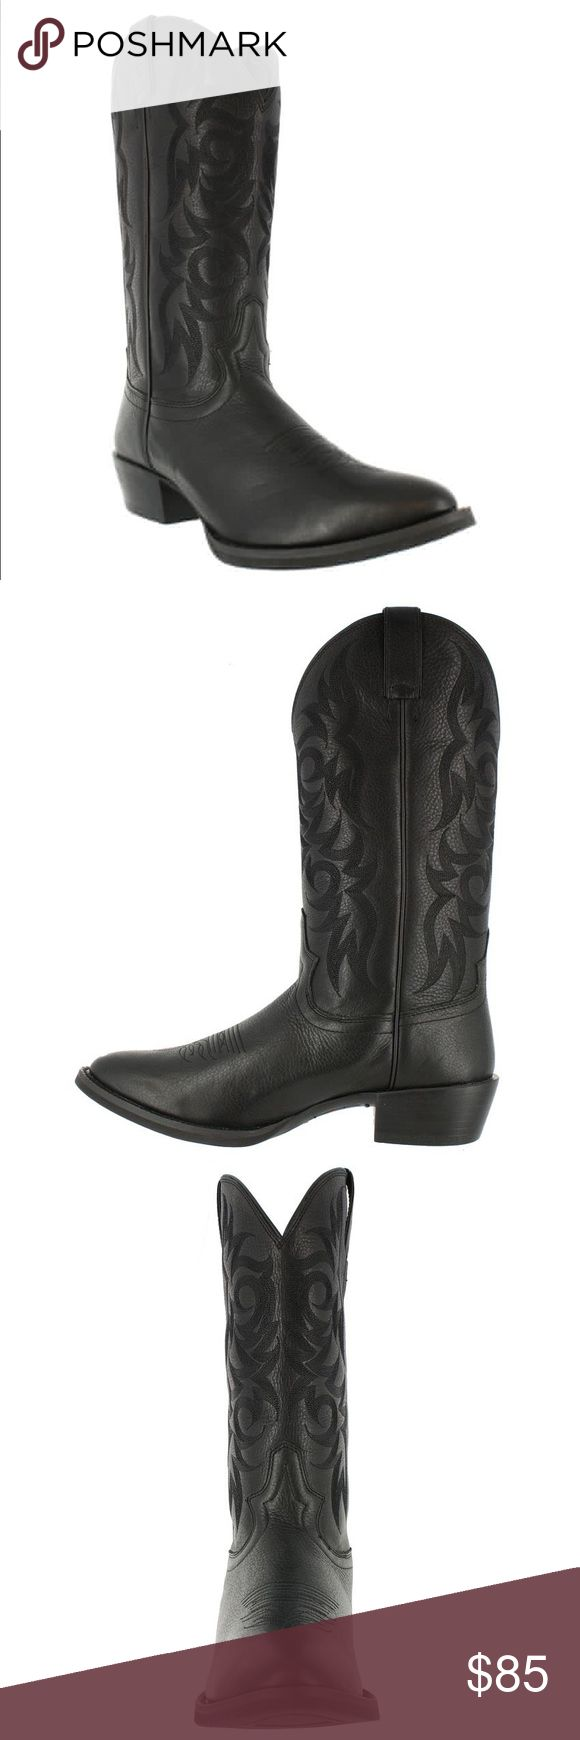 Mens leather Justin boots Justin gypsy men's leather boots size 11. Only worn two-three times. In new condition, no flaws, no scratches or scuffs on leather, beautiful all black boots. Justin Boots Shoes Boots